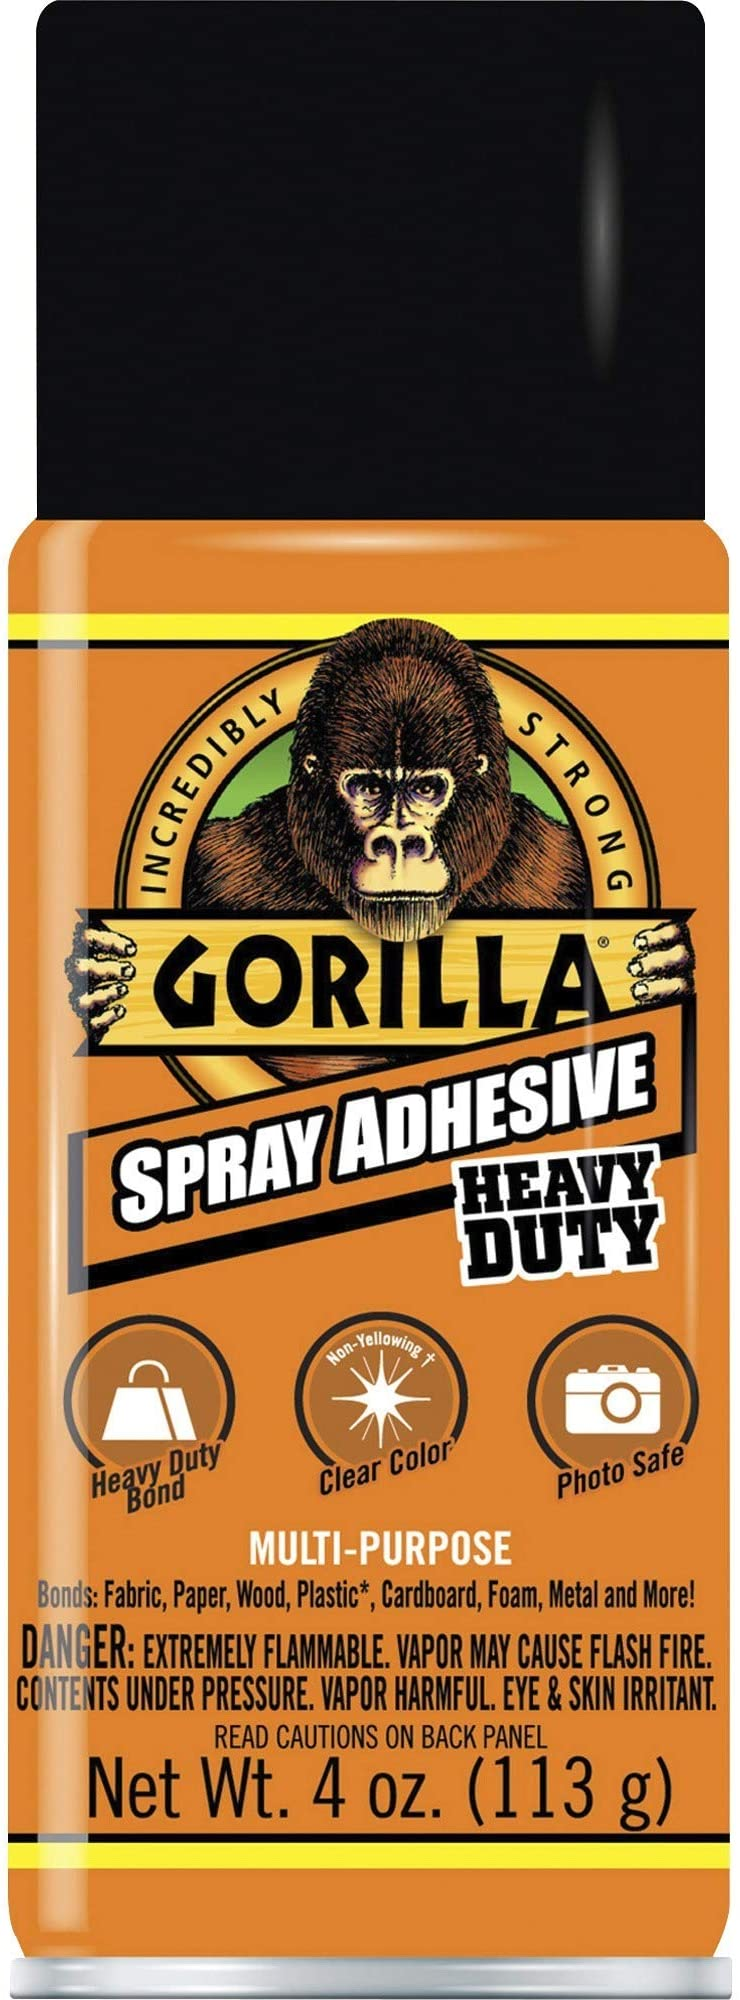 Gorilla Heavy Duty Spray Adhesive, Multipurpose and Repositionable, 4 ounce, Clear, (Pack of 1) - 6346502